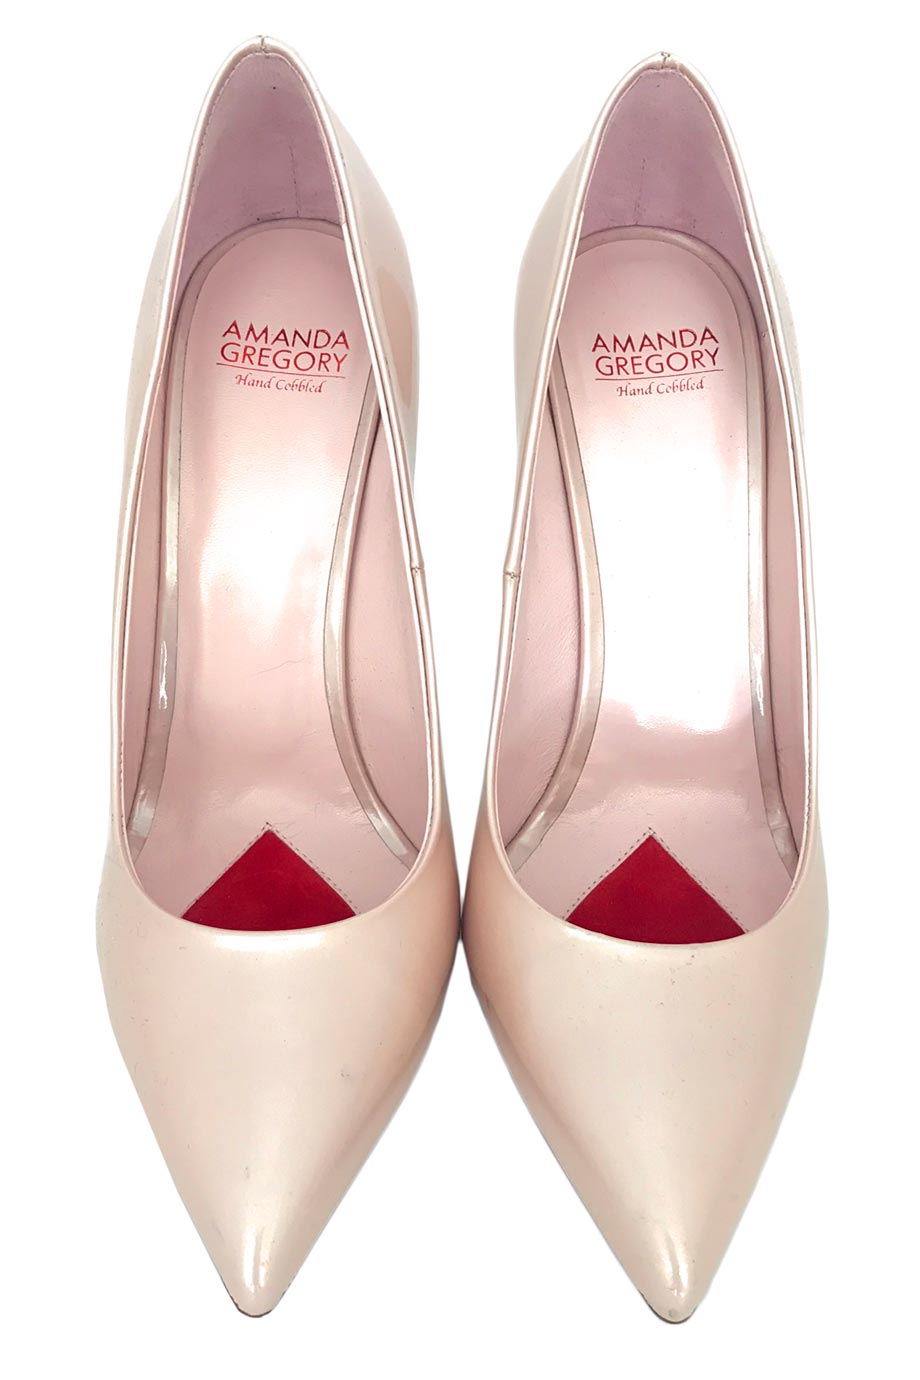 Amanda Gregory Pearl Pink Patent Leather High Heel Pumps / Sz 37-Style Therapy